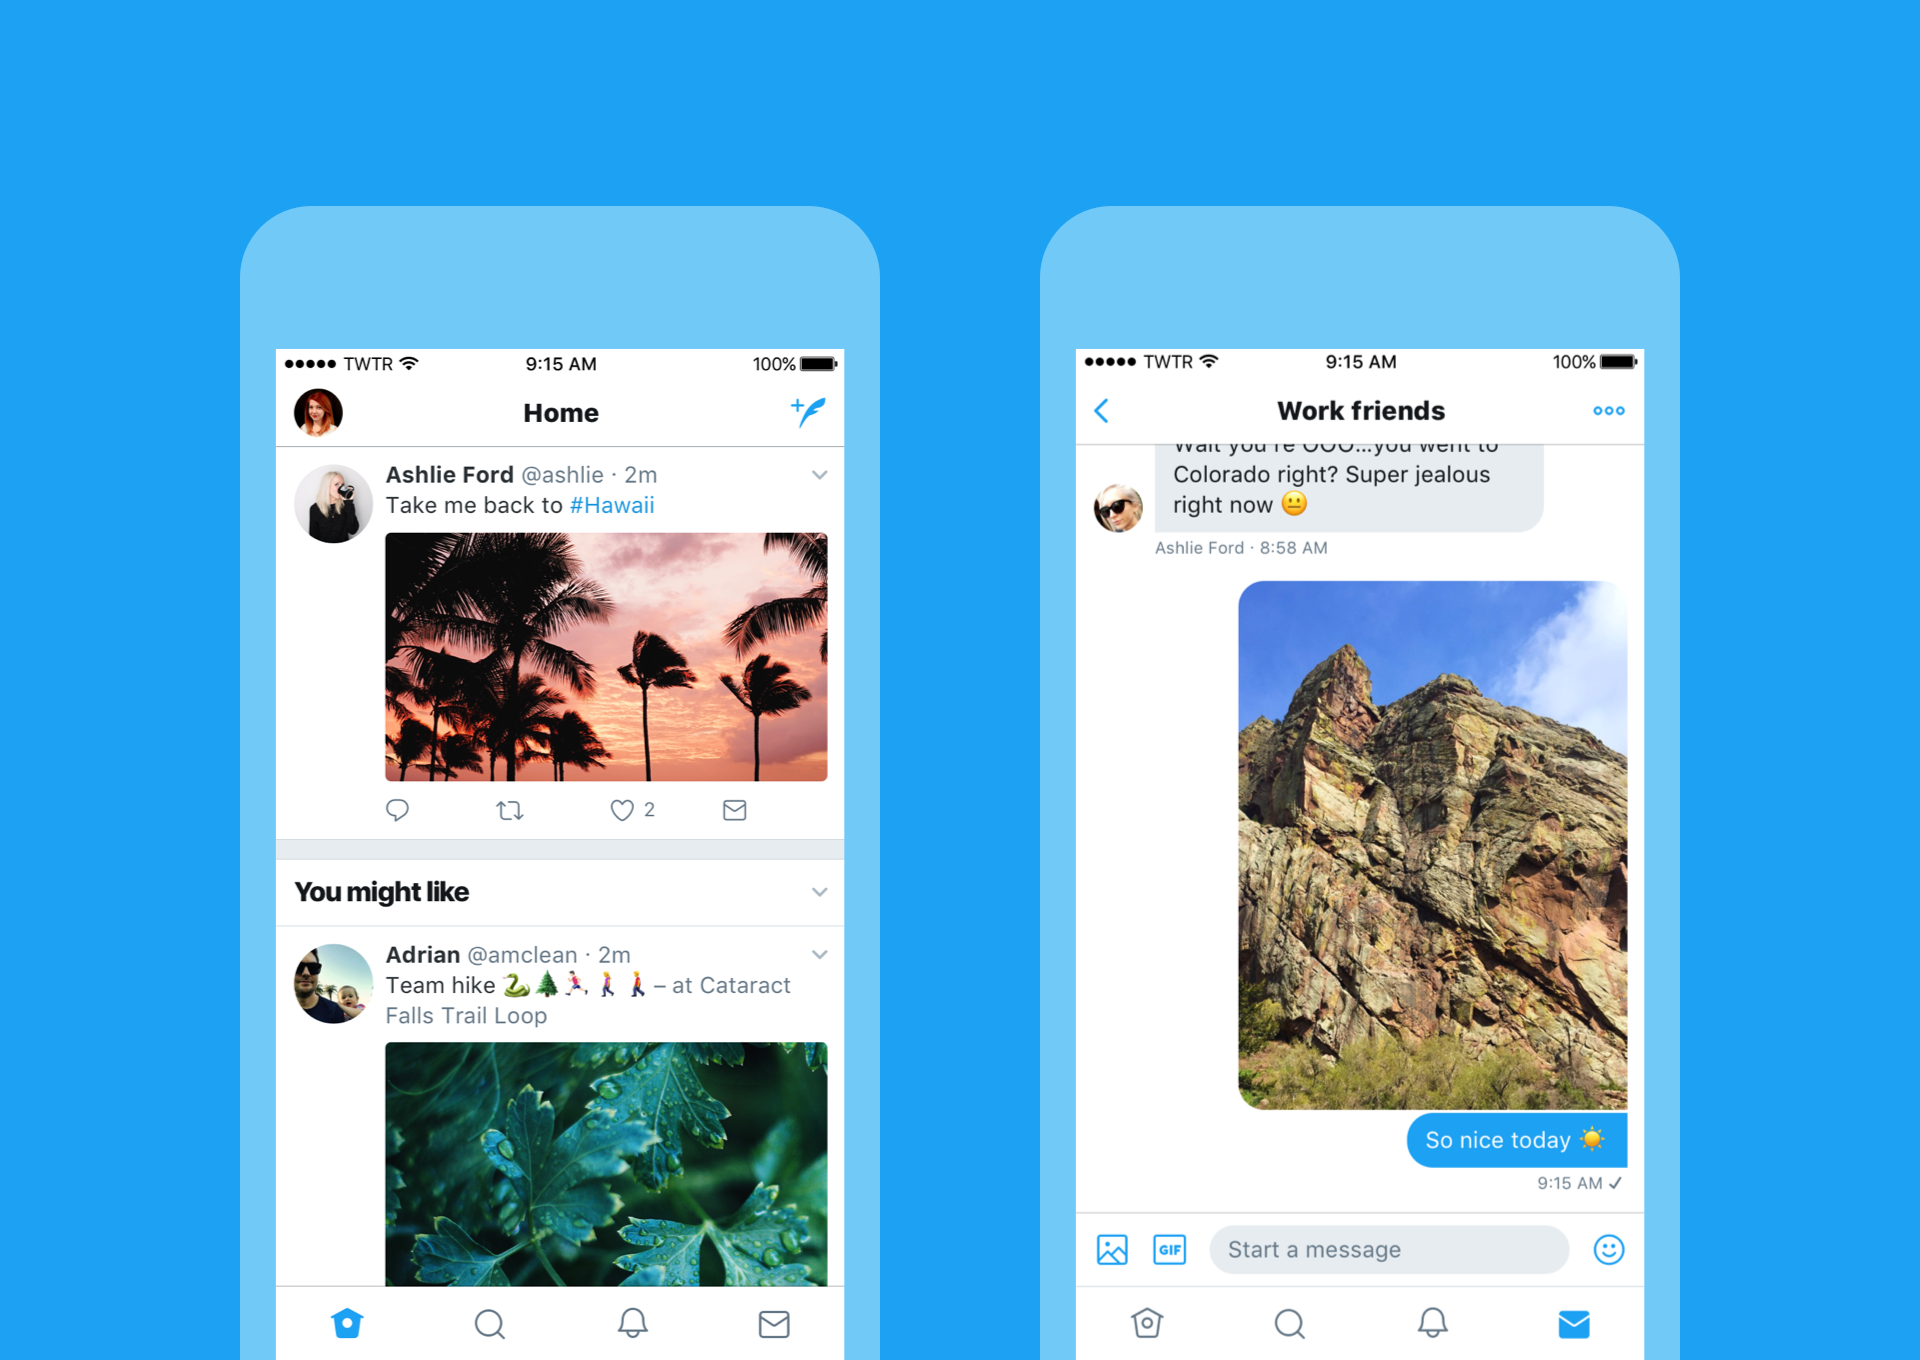 Twitter Tweaks Design Across Mobile & Desktop To Make it Simpler and Attractive